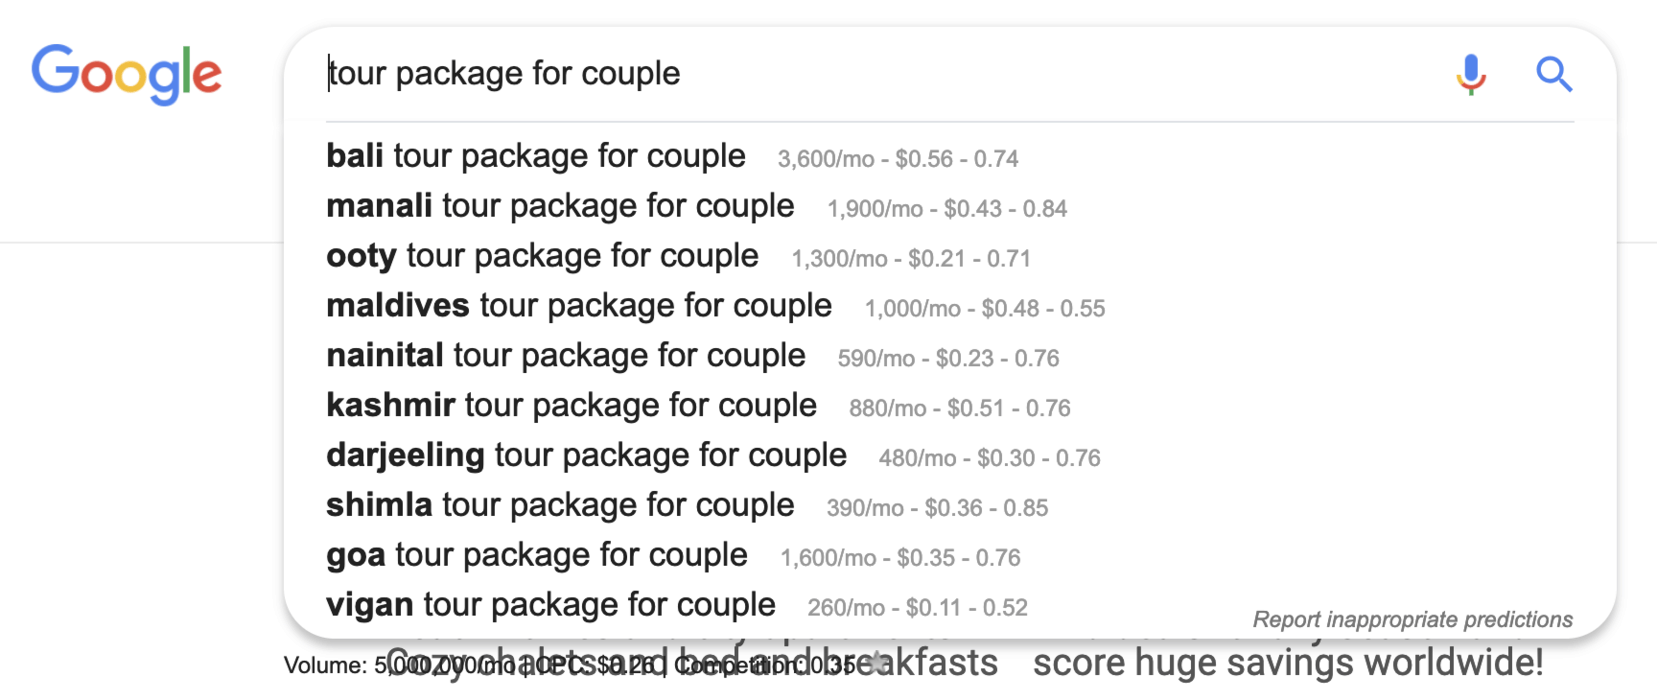 Tour package for couple